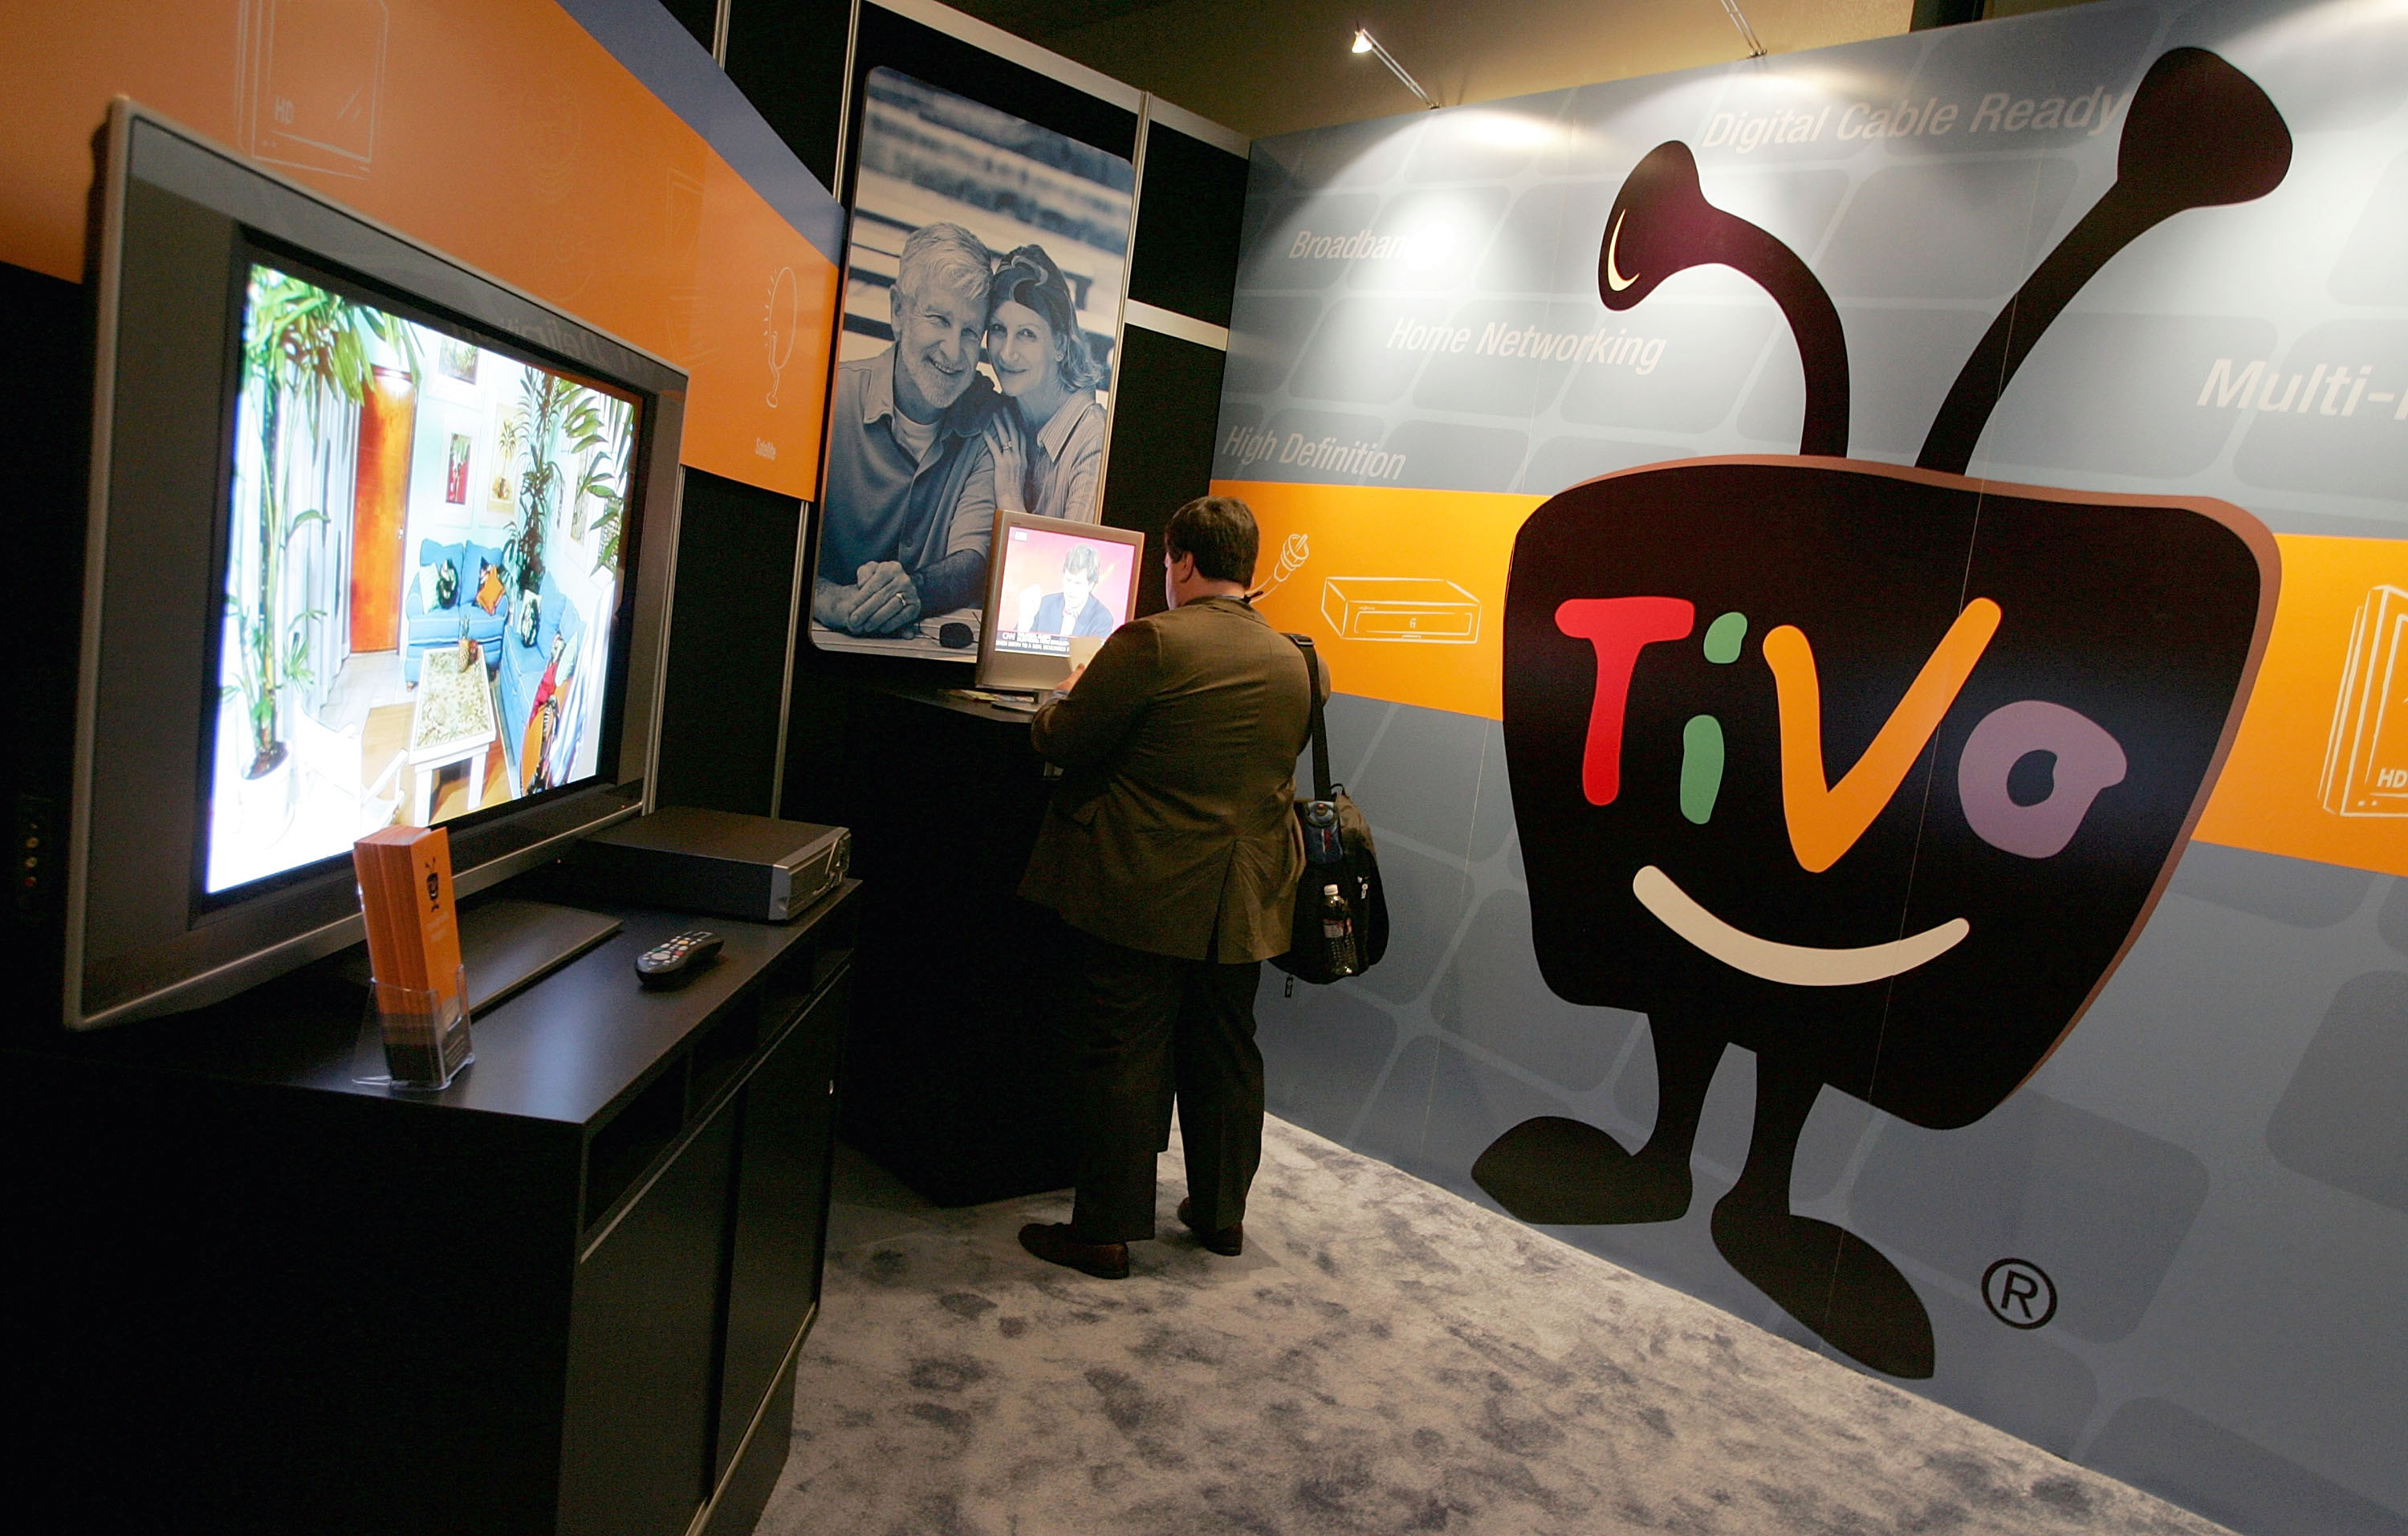 TiVo unveils cloud-based network digital video recorder, emphasizes social discovery and sharing